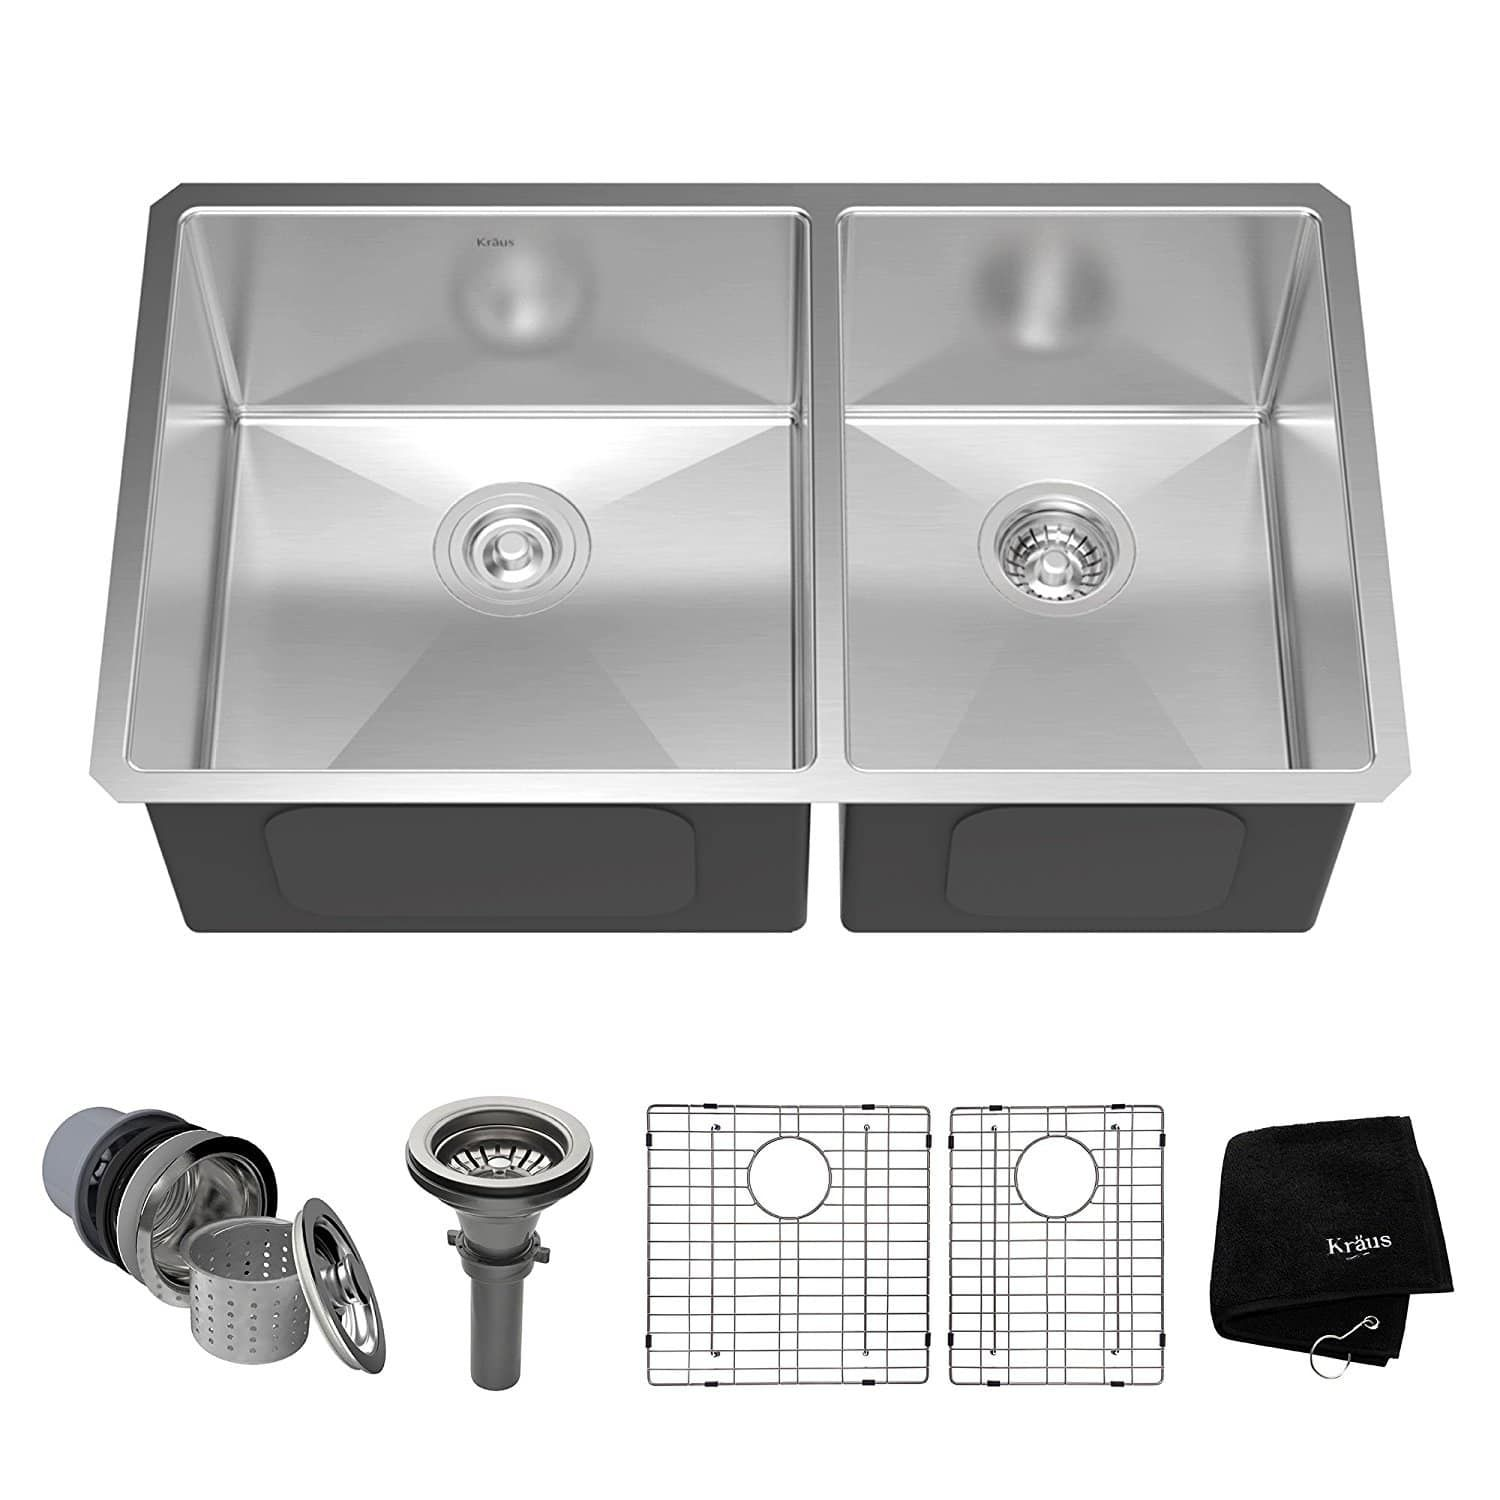 Top 10 Best Double Bowl Stainless Steel Kitchen Sinks In 2020 Topreviewproducts Steel Kitchen Sink Undermount Kitchen Sinks Stainless Steel Kitchen Sink